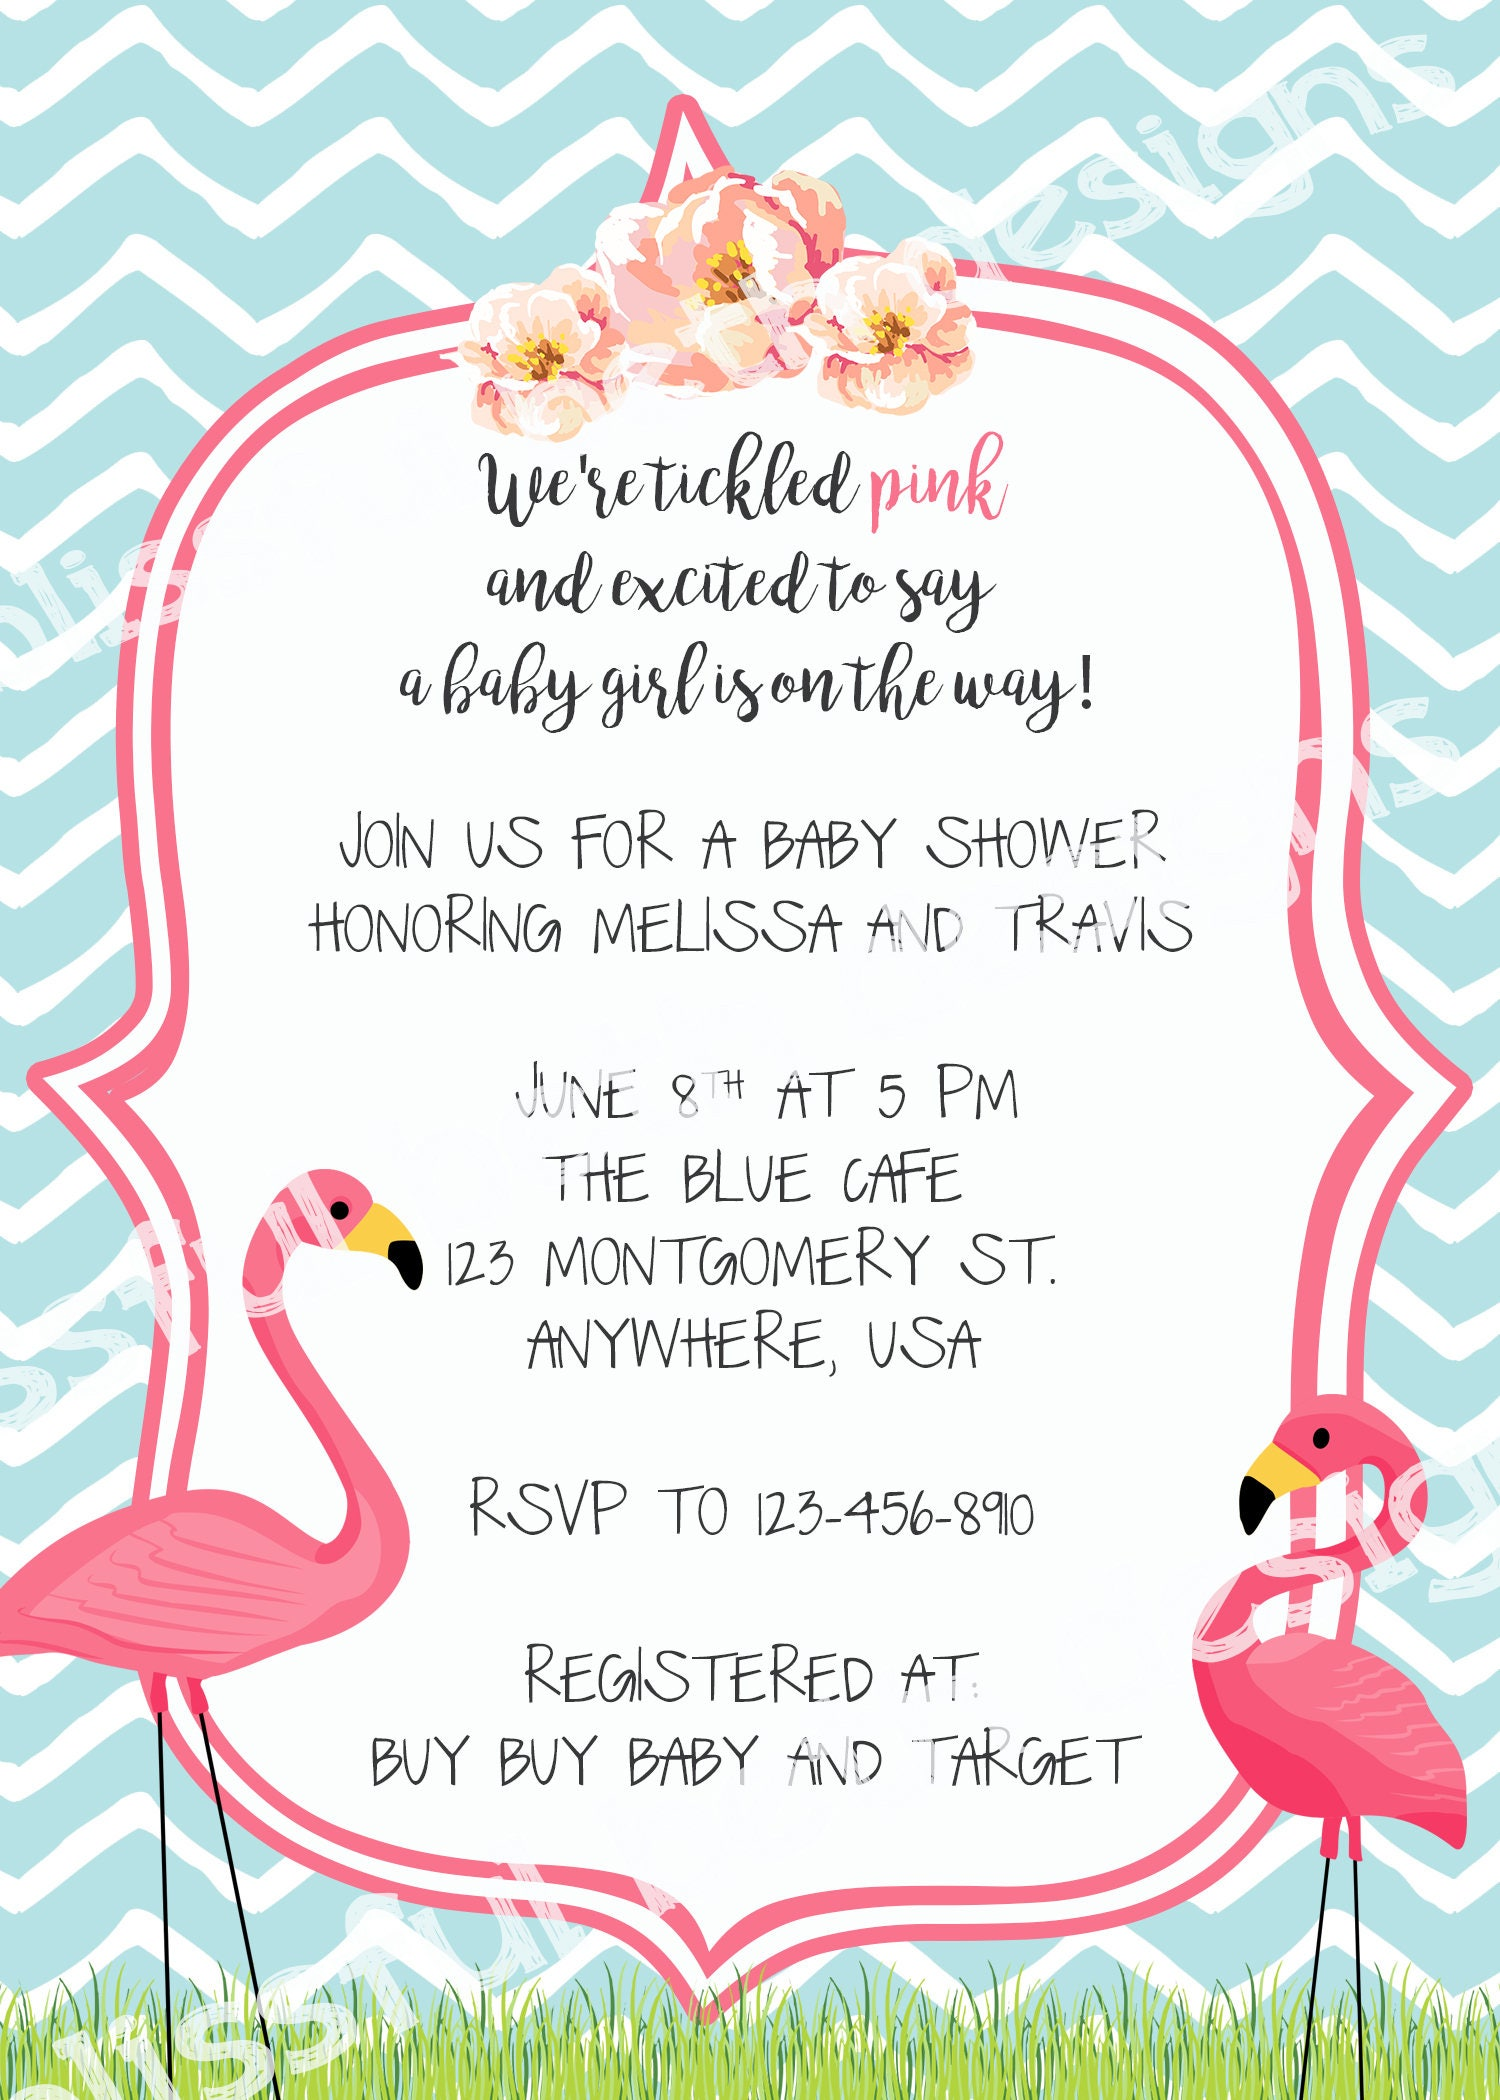 flamingo baby shower tickled pink baby shower invitation flamingo invitation flamingo baby shower flamingo flamingo shower baby